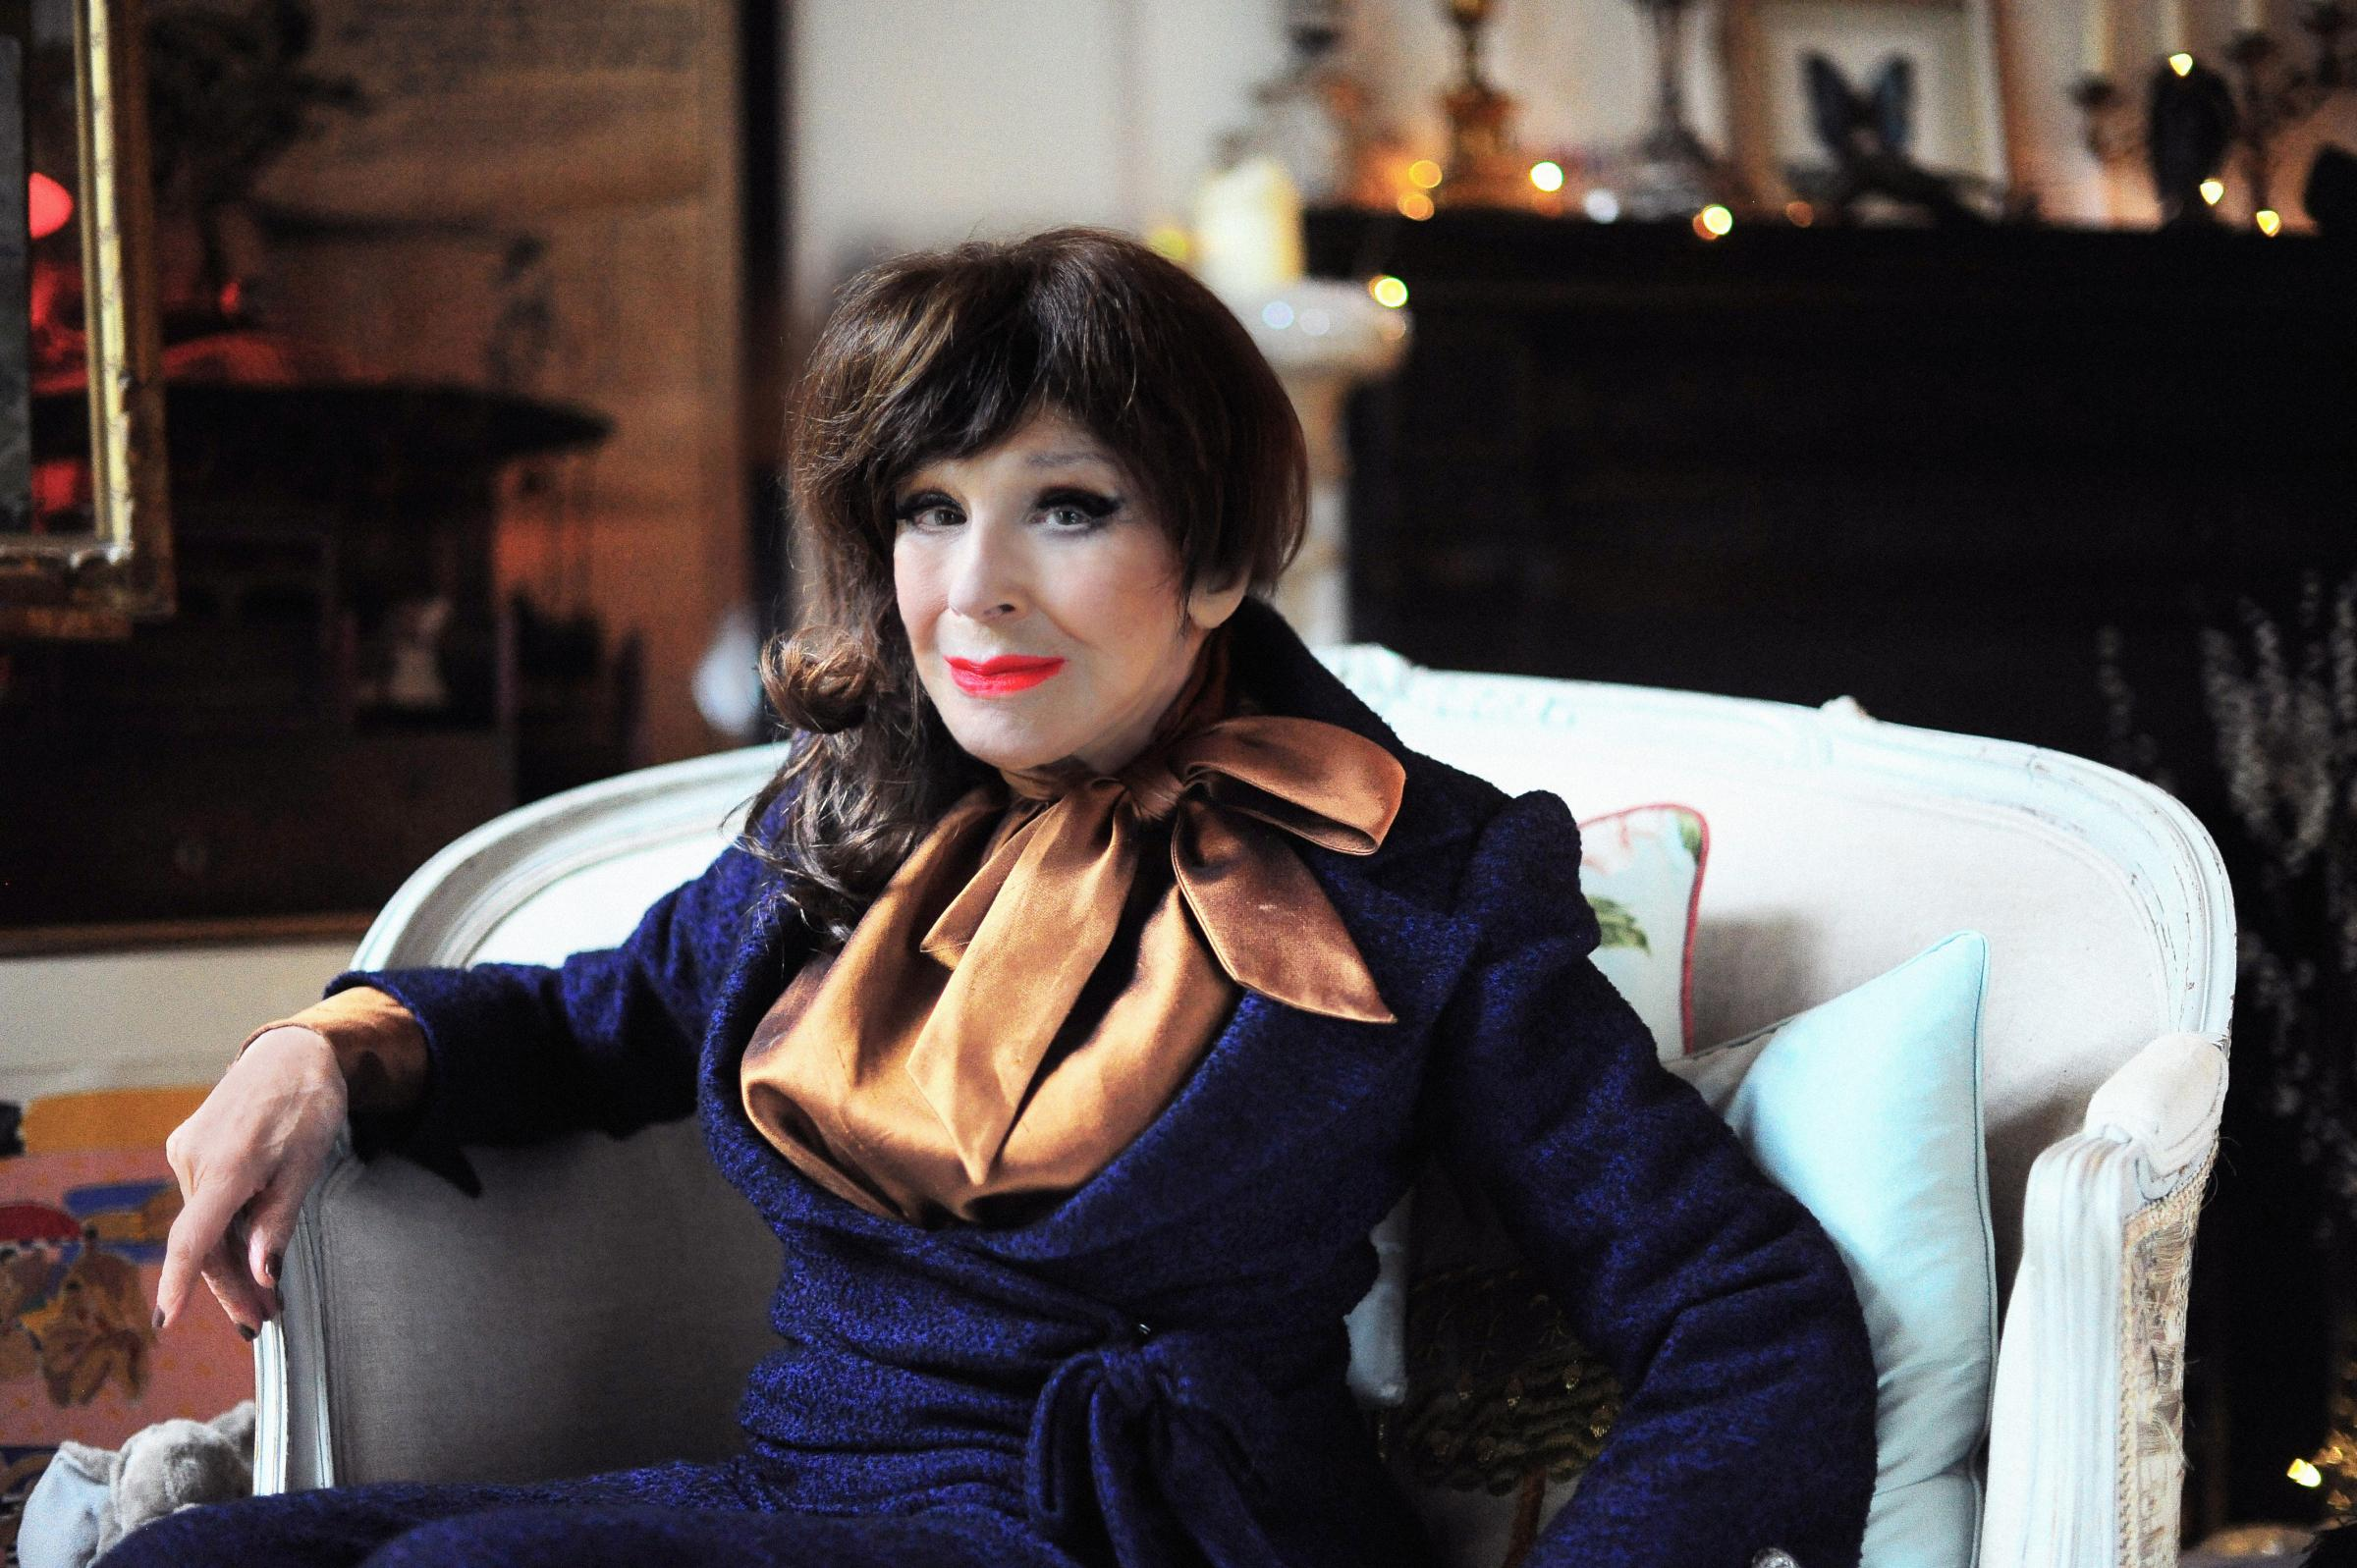 Discussion on this topic: Mary Bond Davis, fenella-fielding/